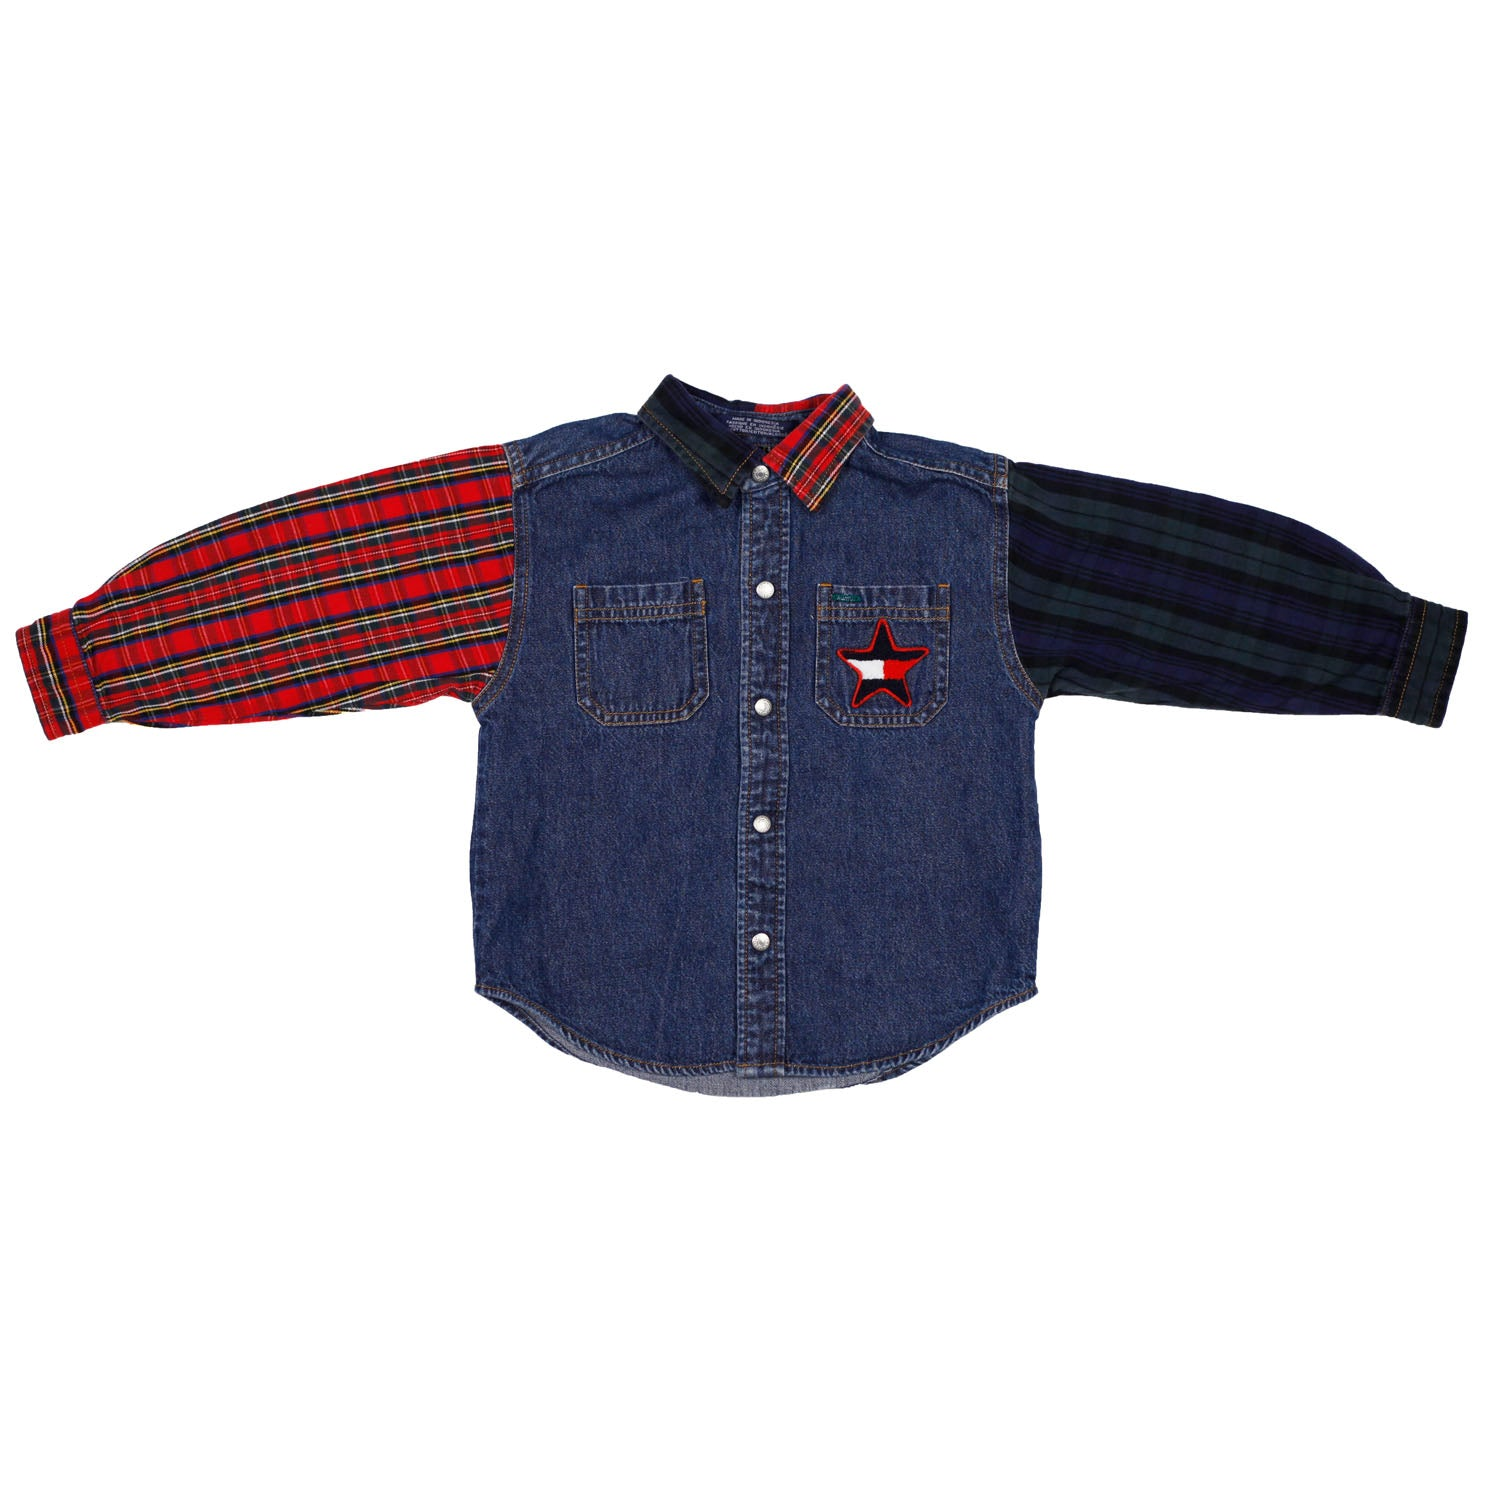 Tommy Hilfiger Denim Plaid 2 piece set size size 3T